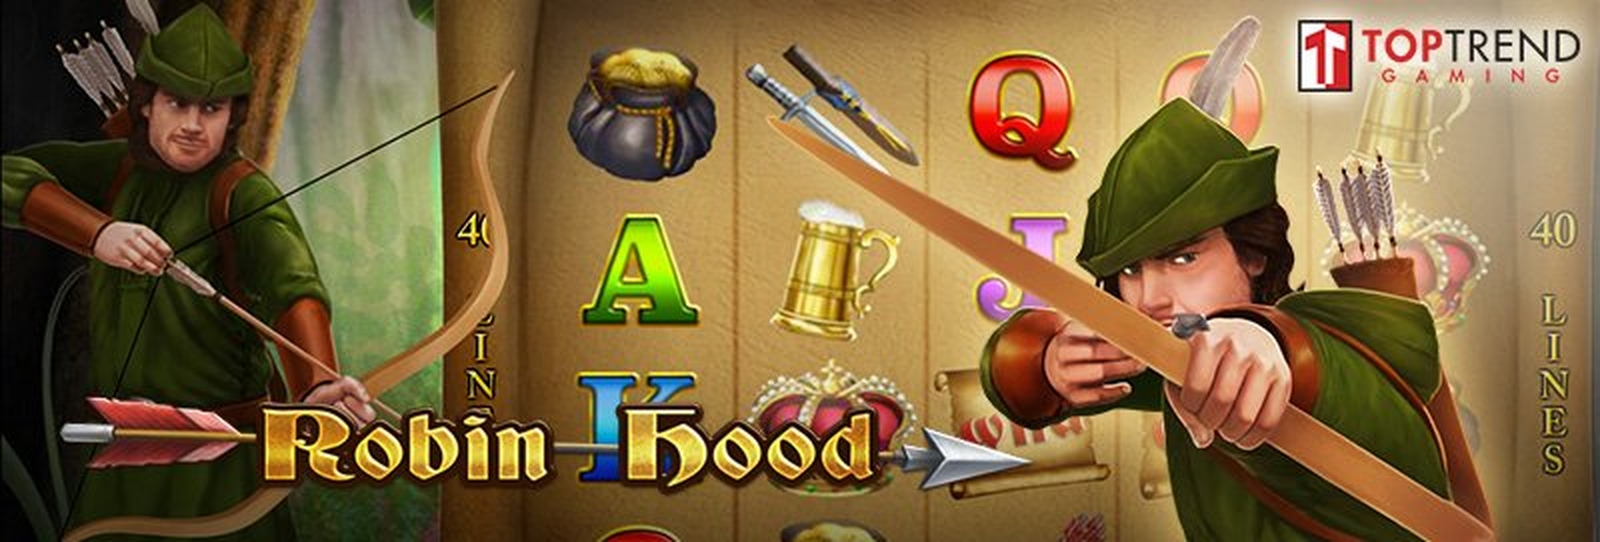 The Robin Hood (TopTrendGaming) Online Slot Demo Game by Top Trend Gaming